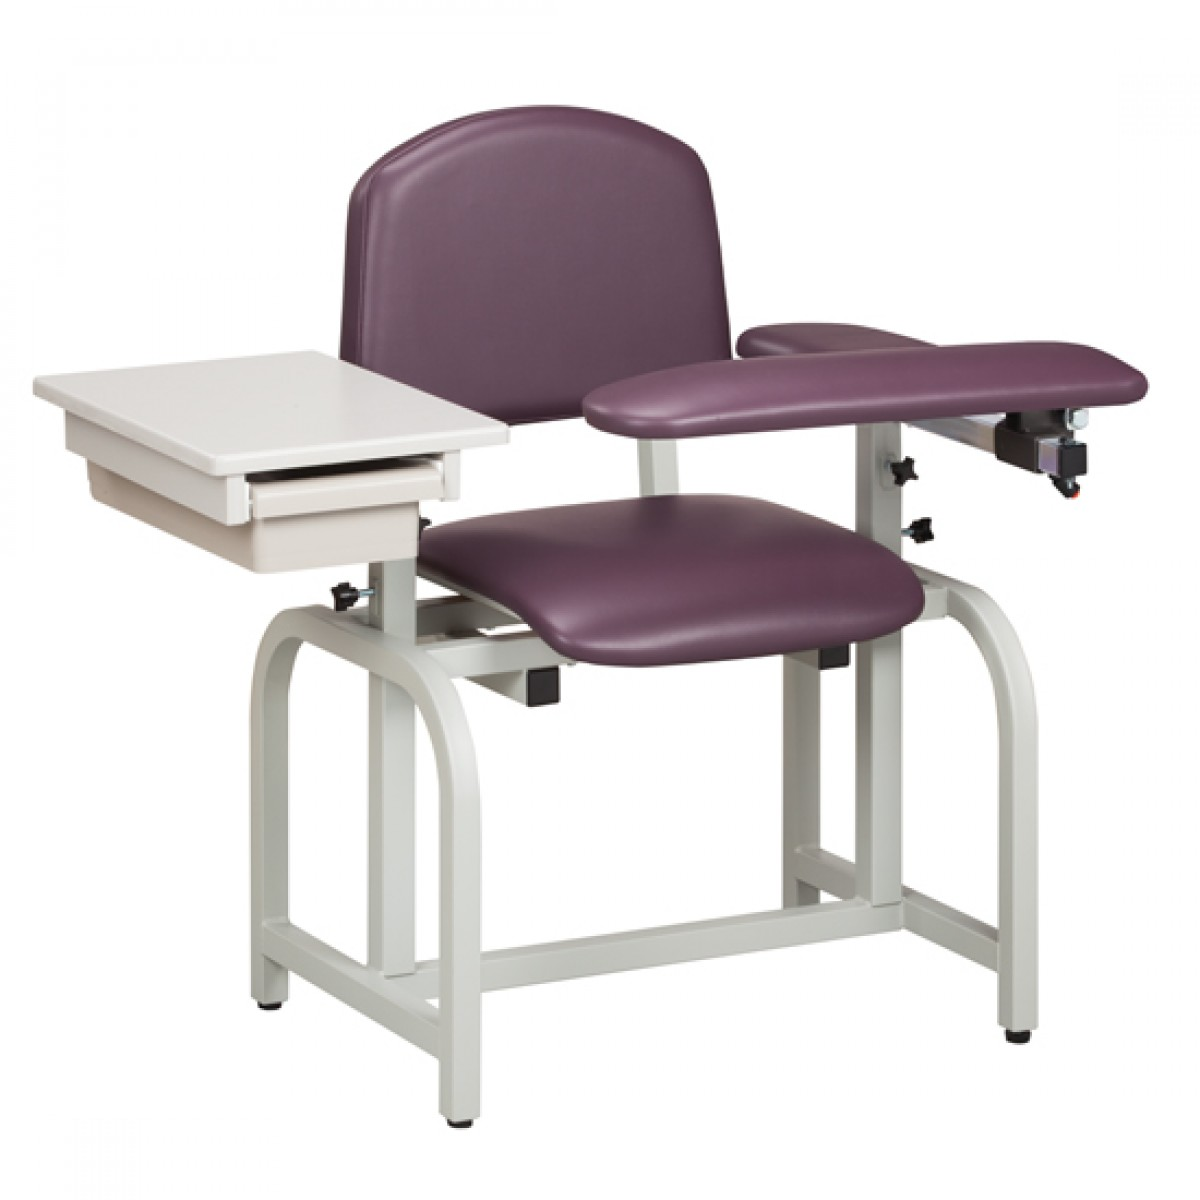 Phenomenal Clinton 66020 Blood Drawing Chair With Padded Flip Arm And Drawer 400 Lb Capacity Theyellowbook Wood Chair Design Ideas Theyellowbookinfo